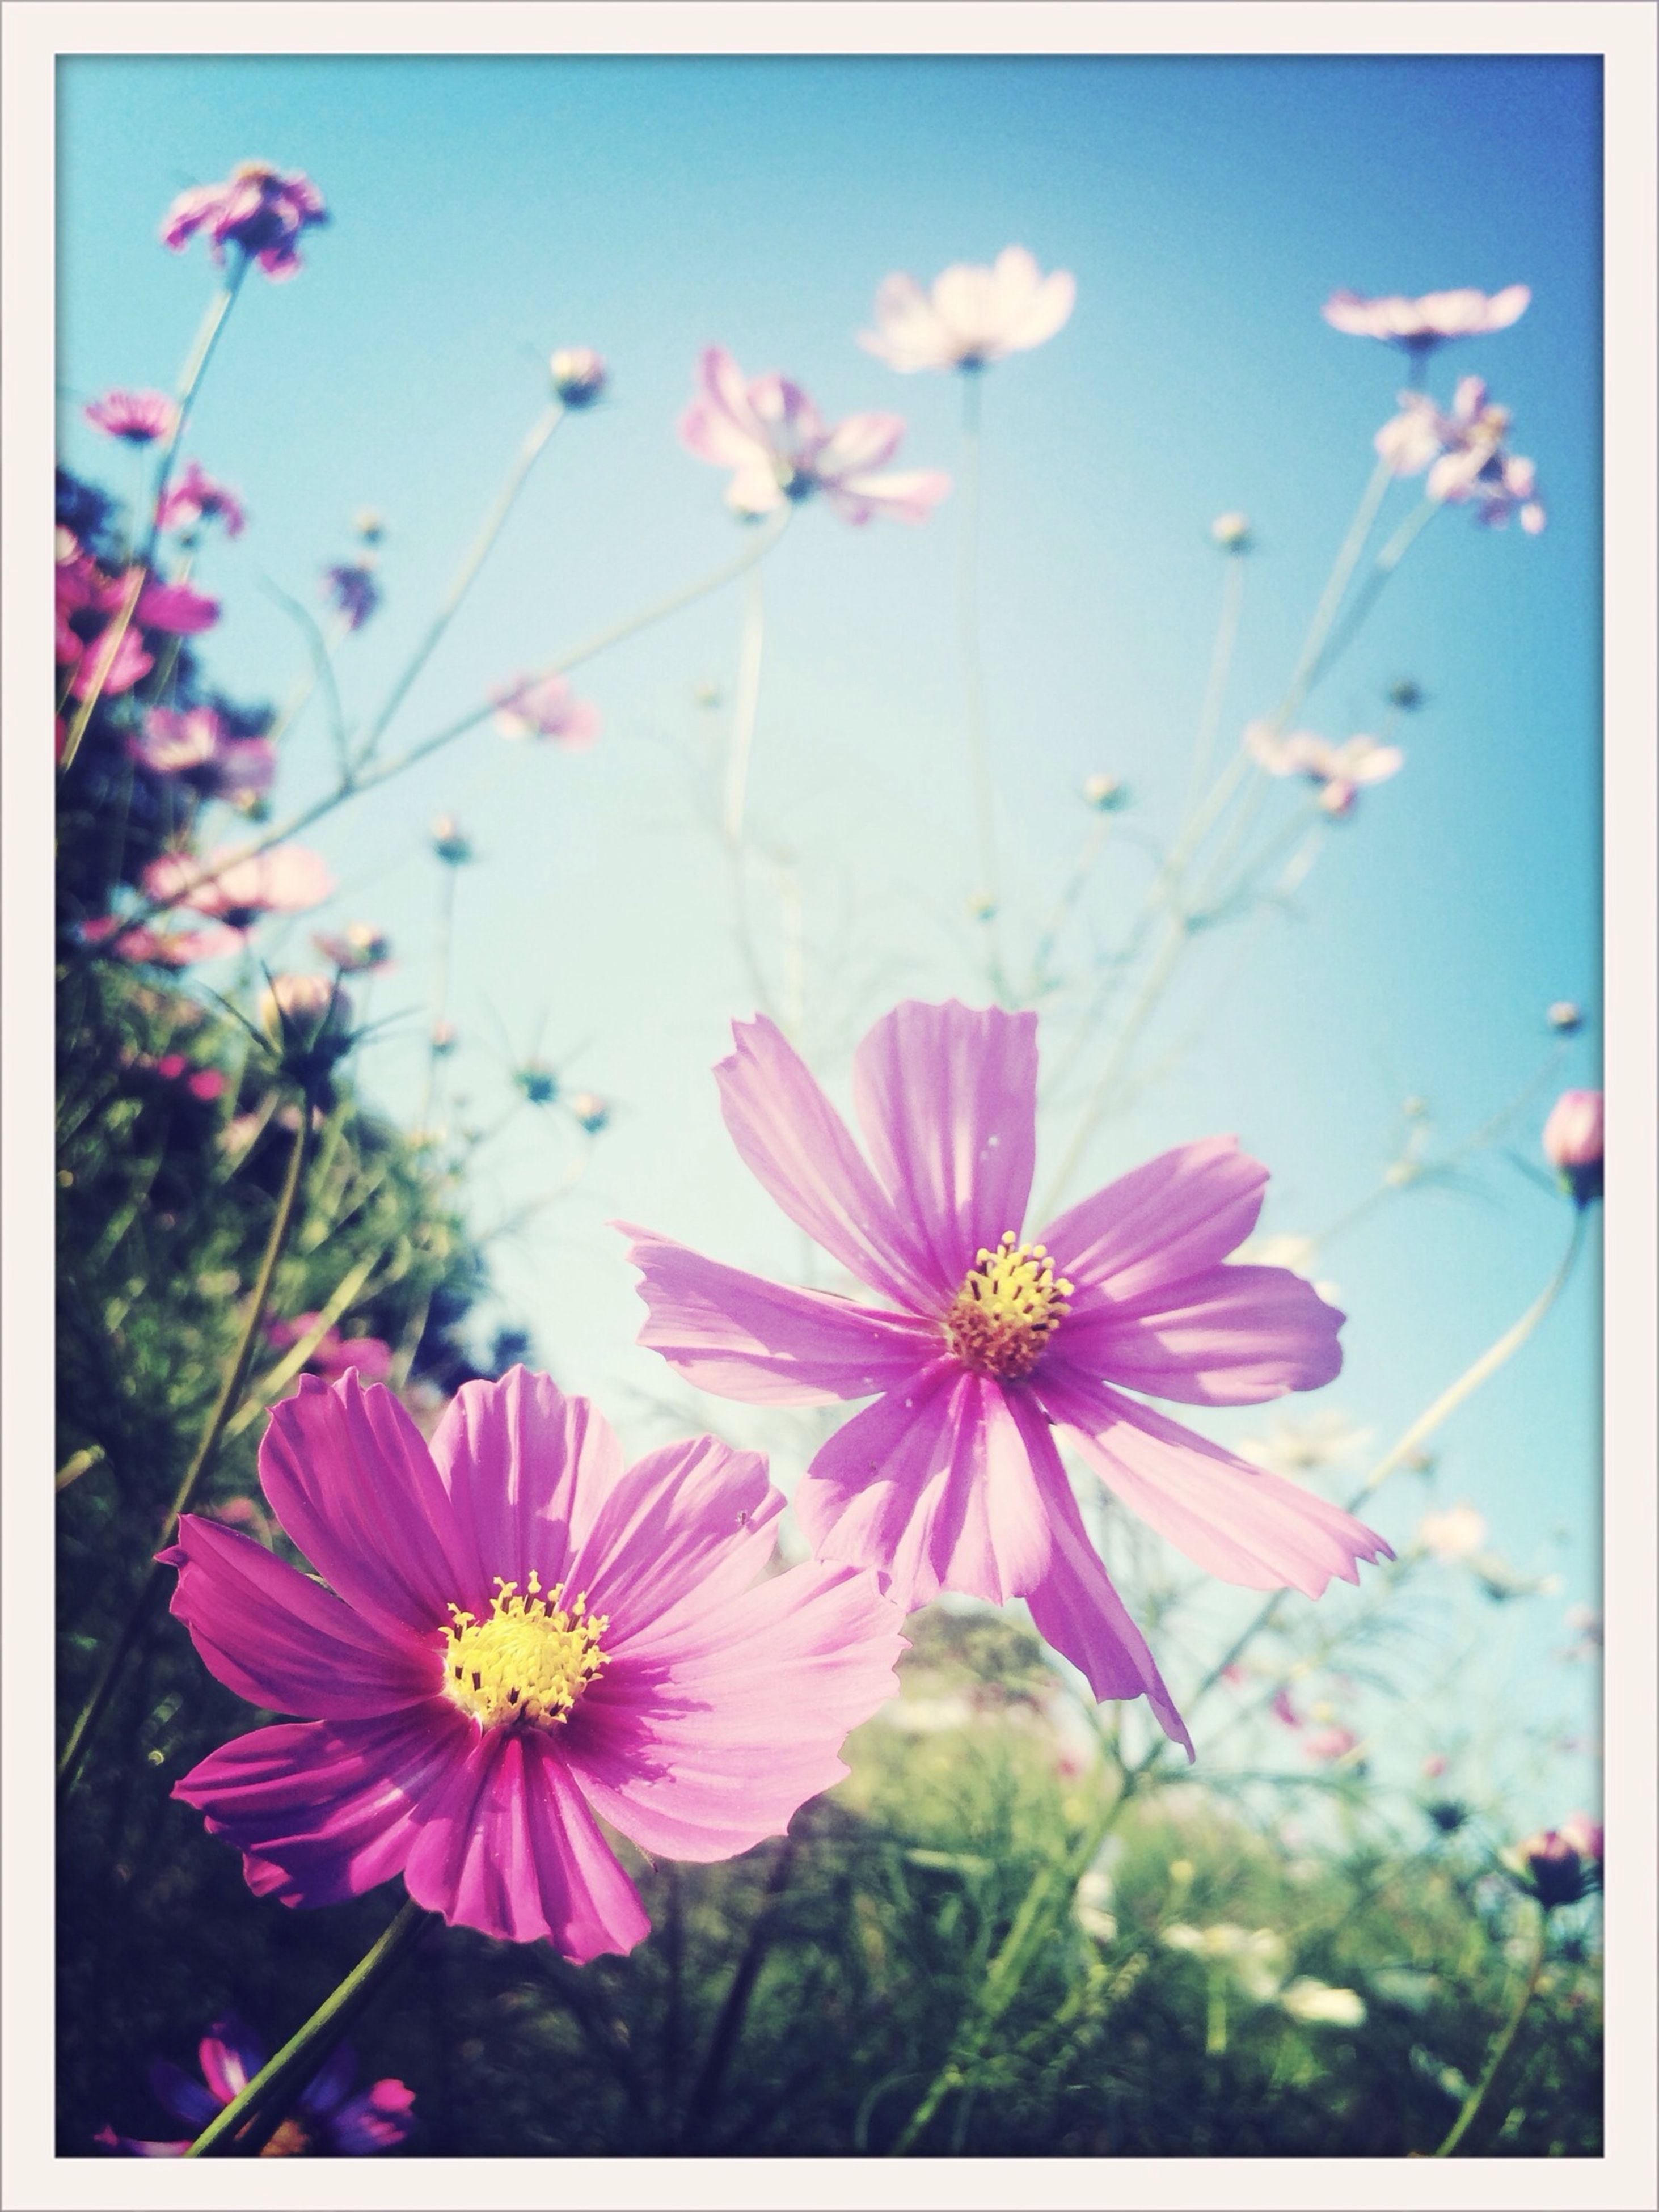 flower, freshness, petal, fragility, flower head, transfer print, growth, beauty in nature, blooming, pink color, auto post production filter, nature, plant, focus on foreground, in bloom, close-up, stem, pollen, blossom, purple